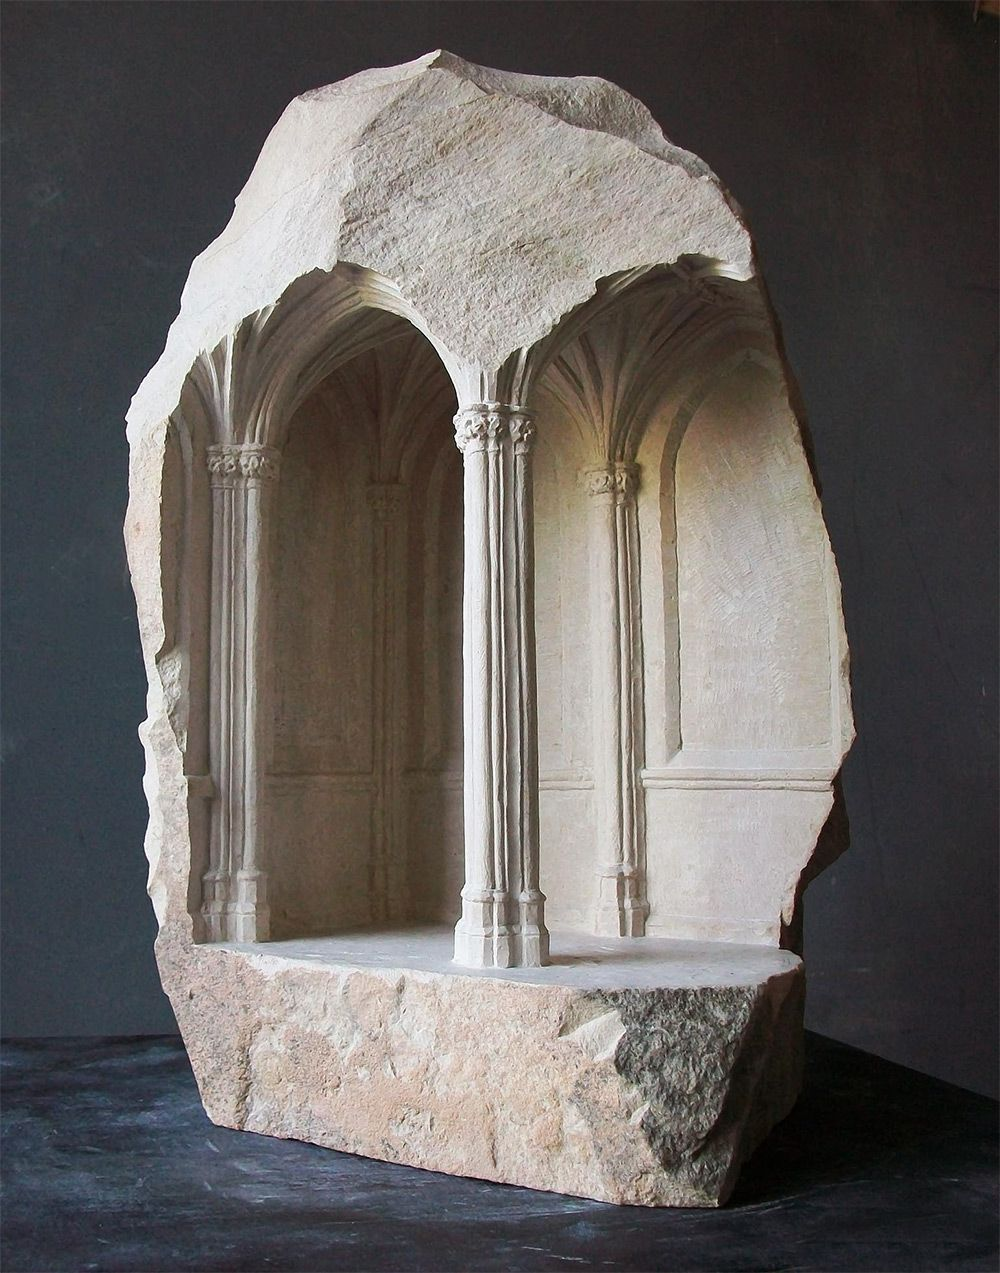 Miniature Medieval Interiors Carved into Raw Marble Blocks by Mathew Simmonds